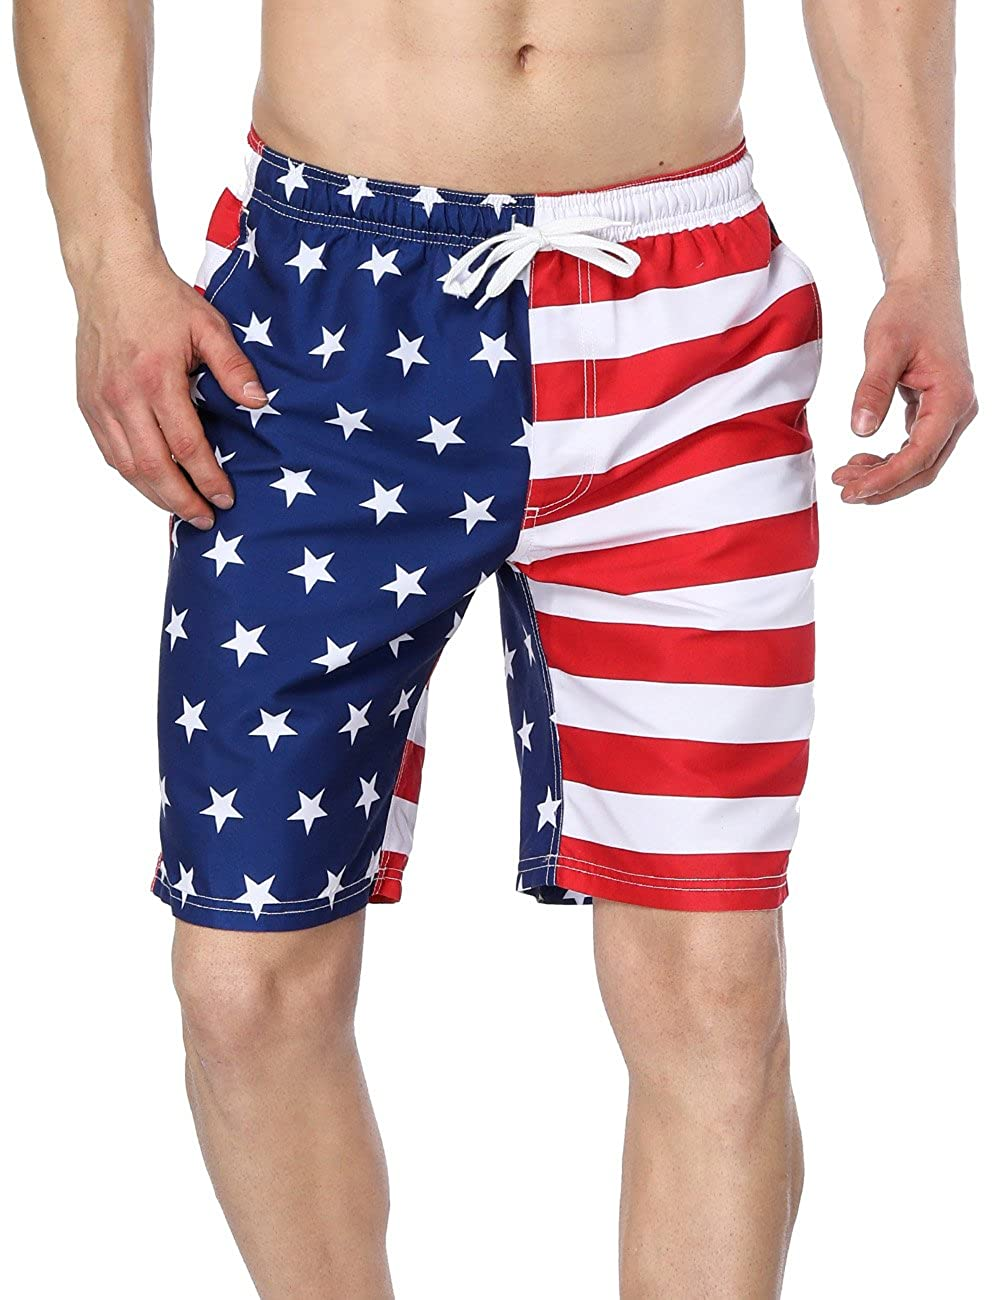 V FOR CITY Men's Solid Jammer Swimsuit Splice Durable Swim Suit Competition Bathing Suit